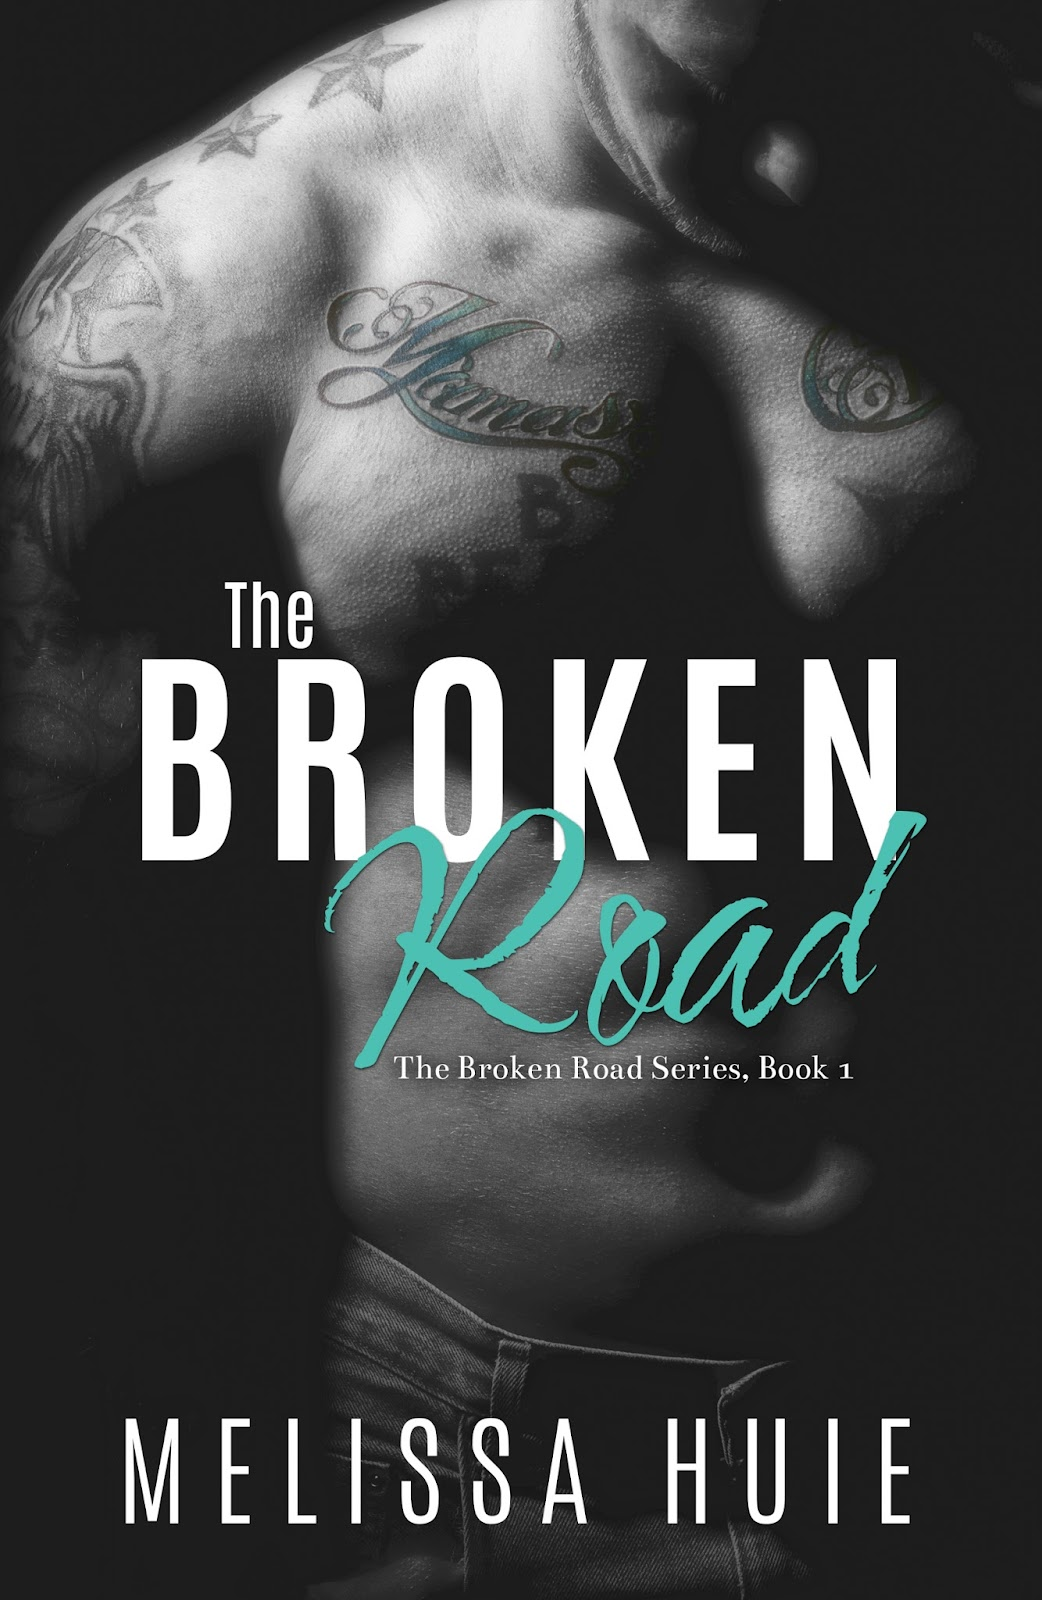 BrokenRoad_Amazon (1).jpg